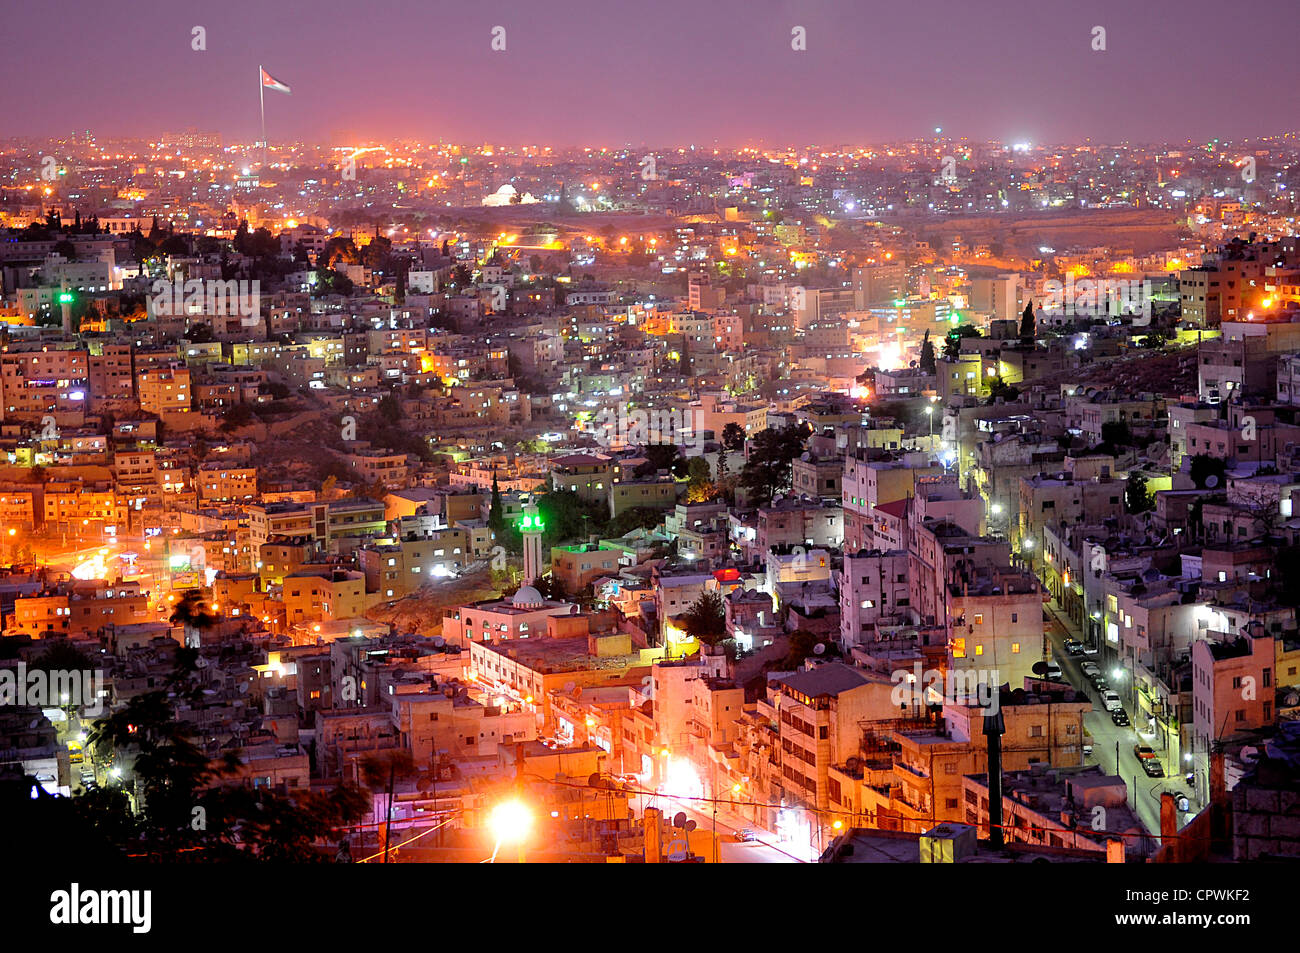 Asie Jordanie Amman sur la ville Photo Stock